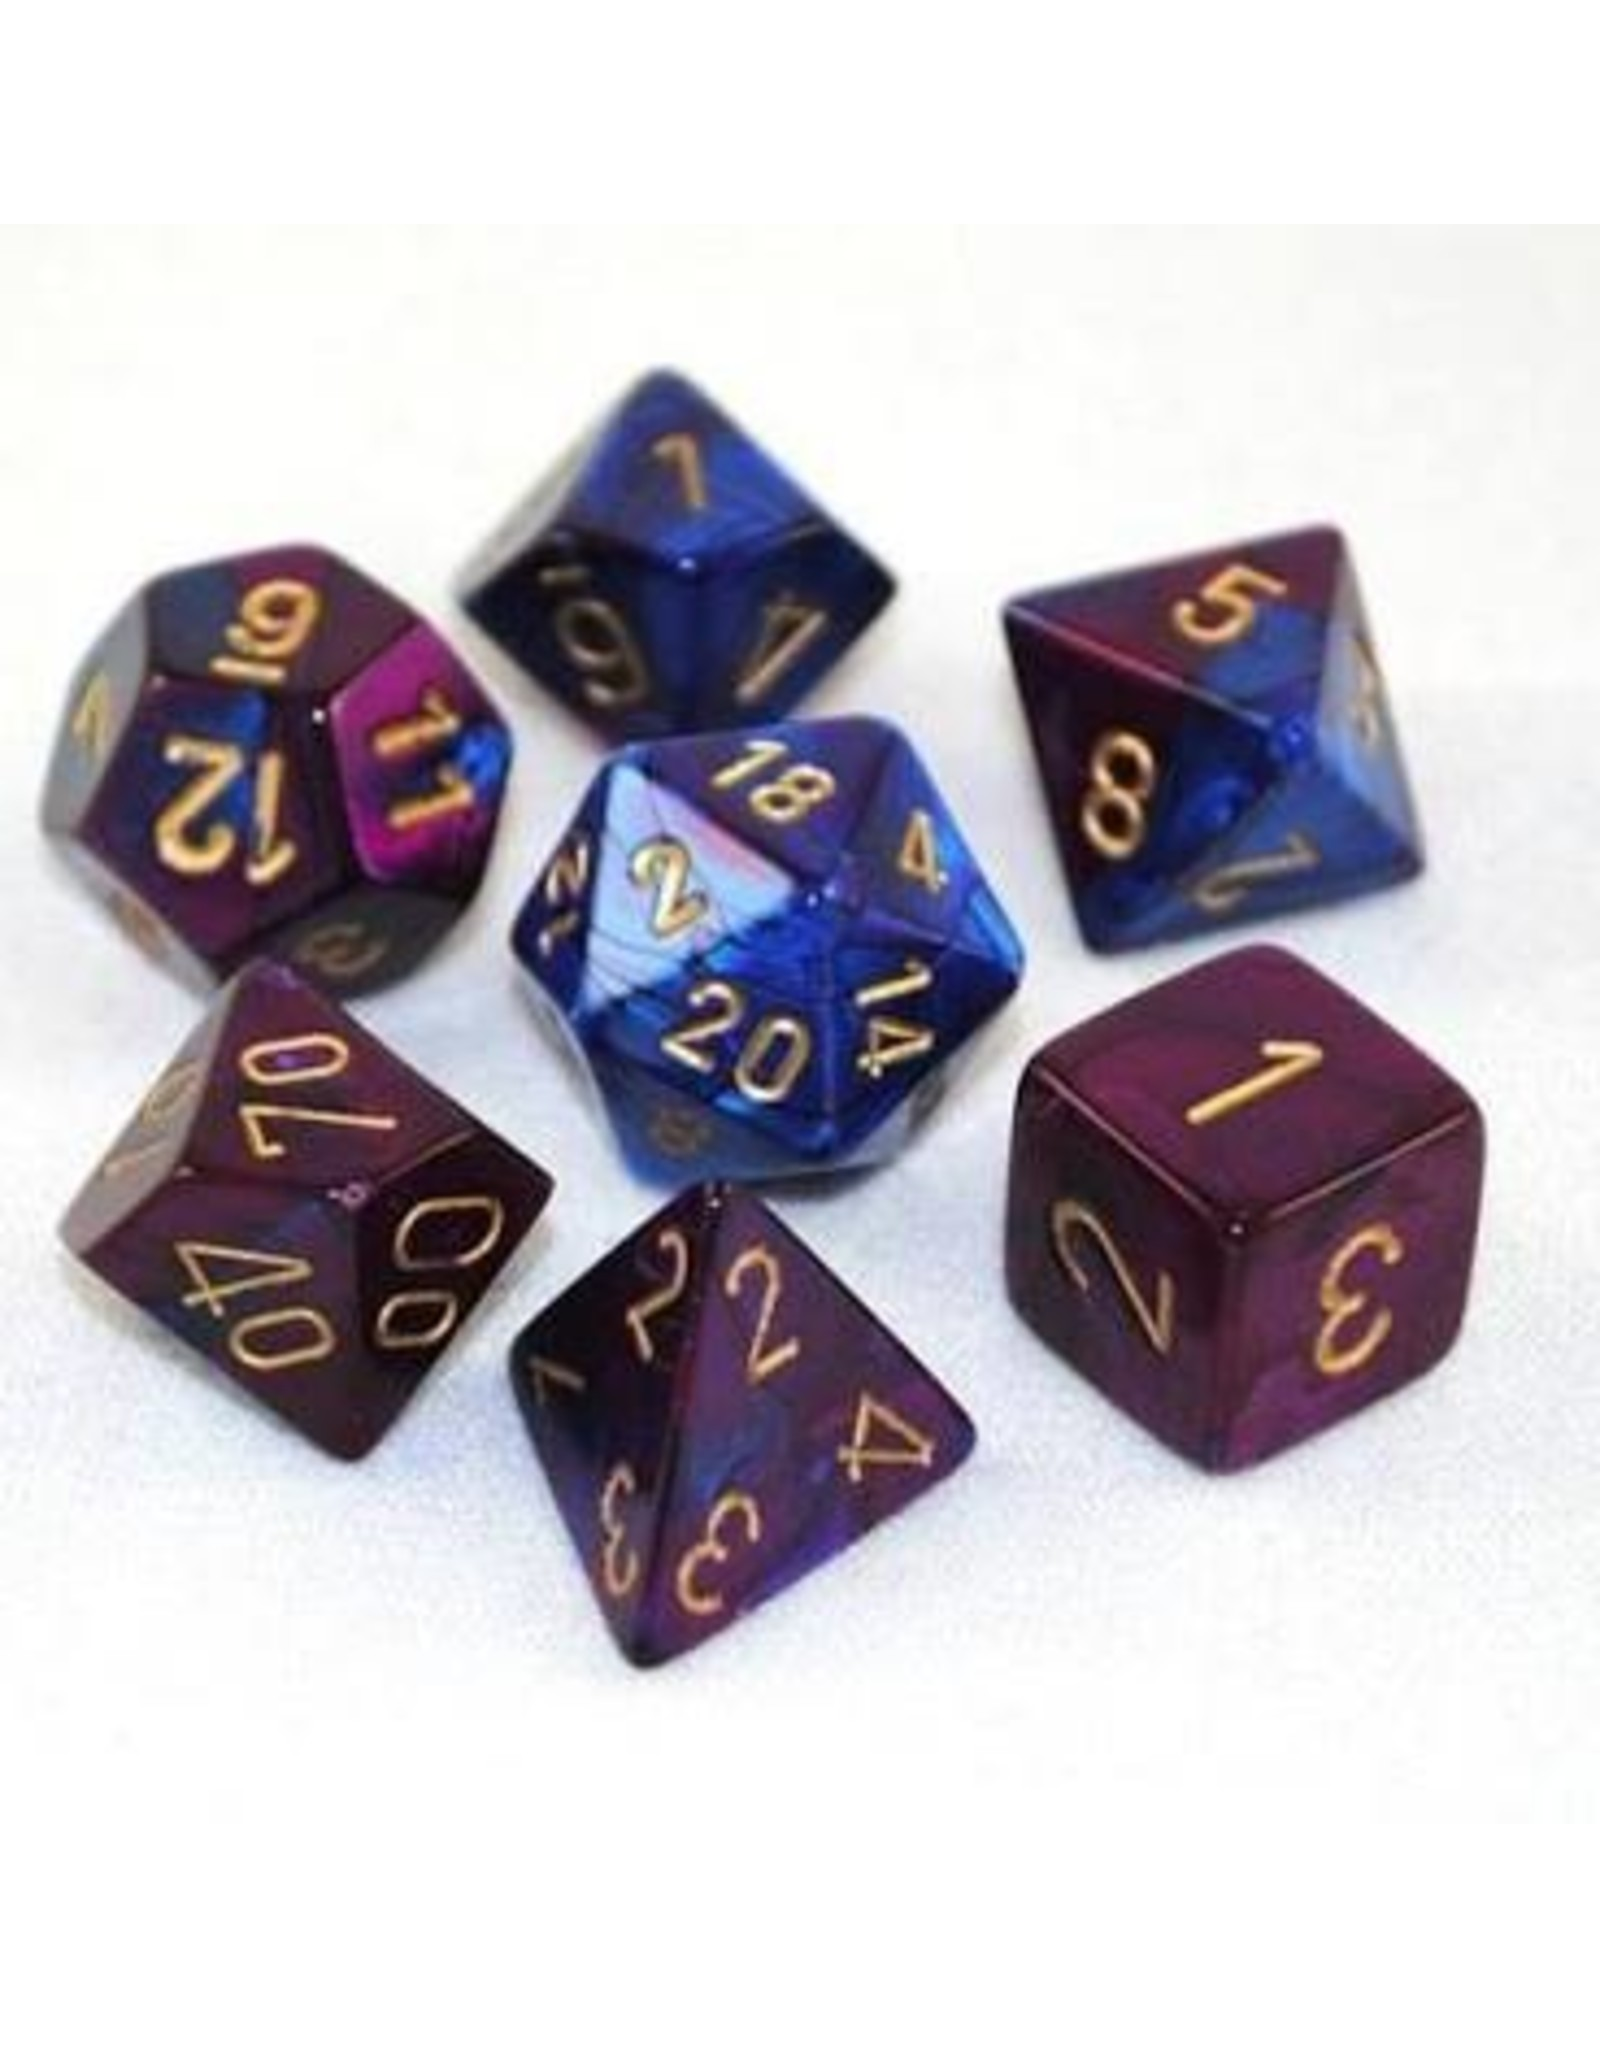 Chessex 7-Set Polyhedral Gemin2 Blue/Purple w/Gold